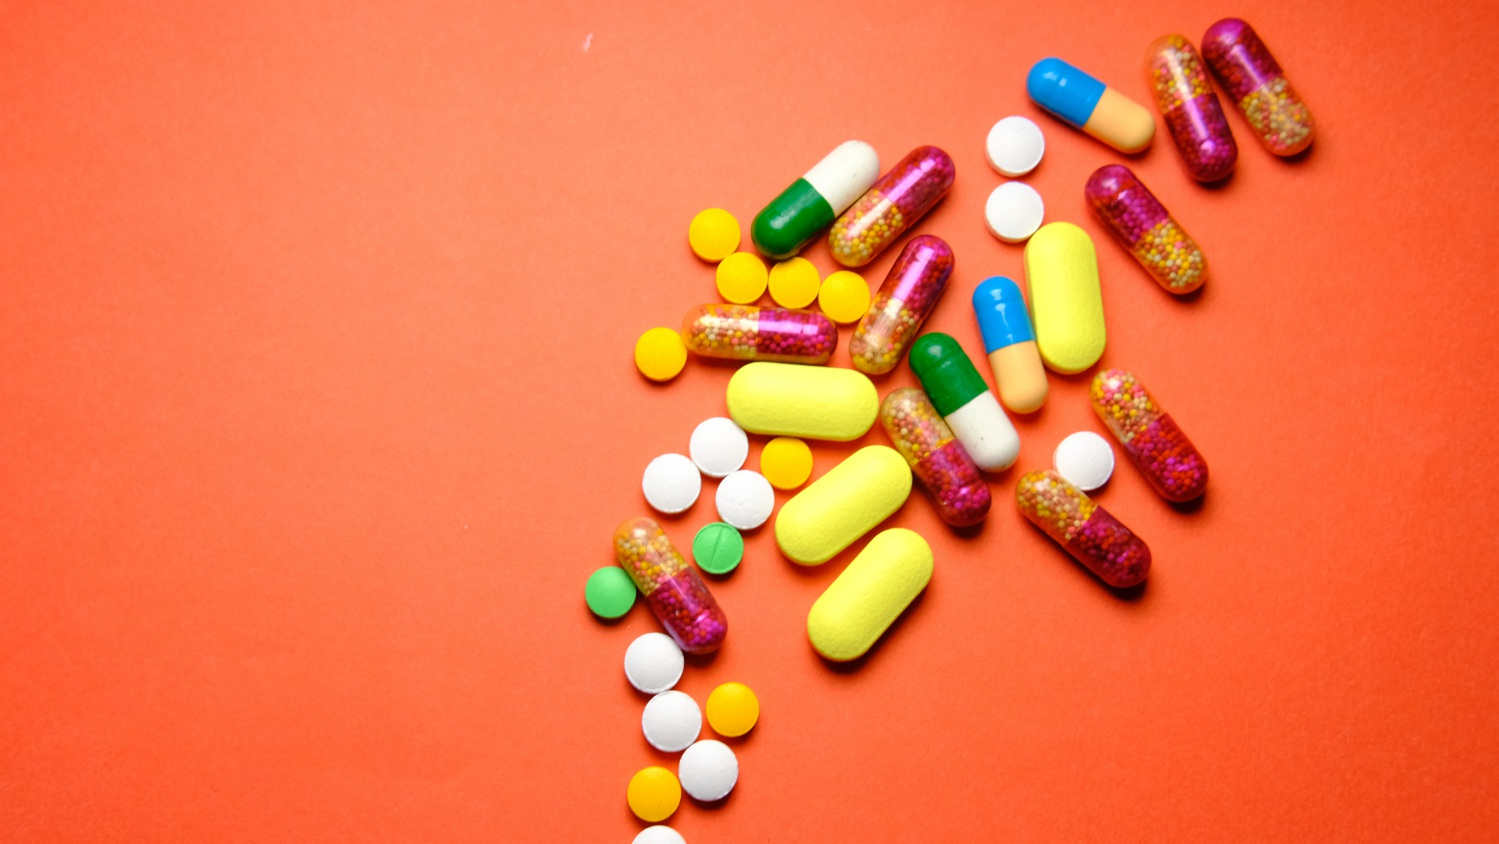 Can Supplements and Multivitamins Really Help Your Heart? Here's What Science Says